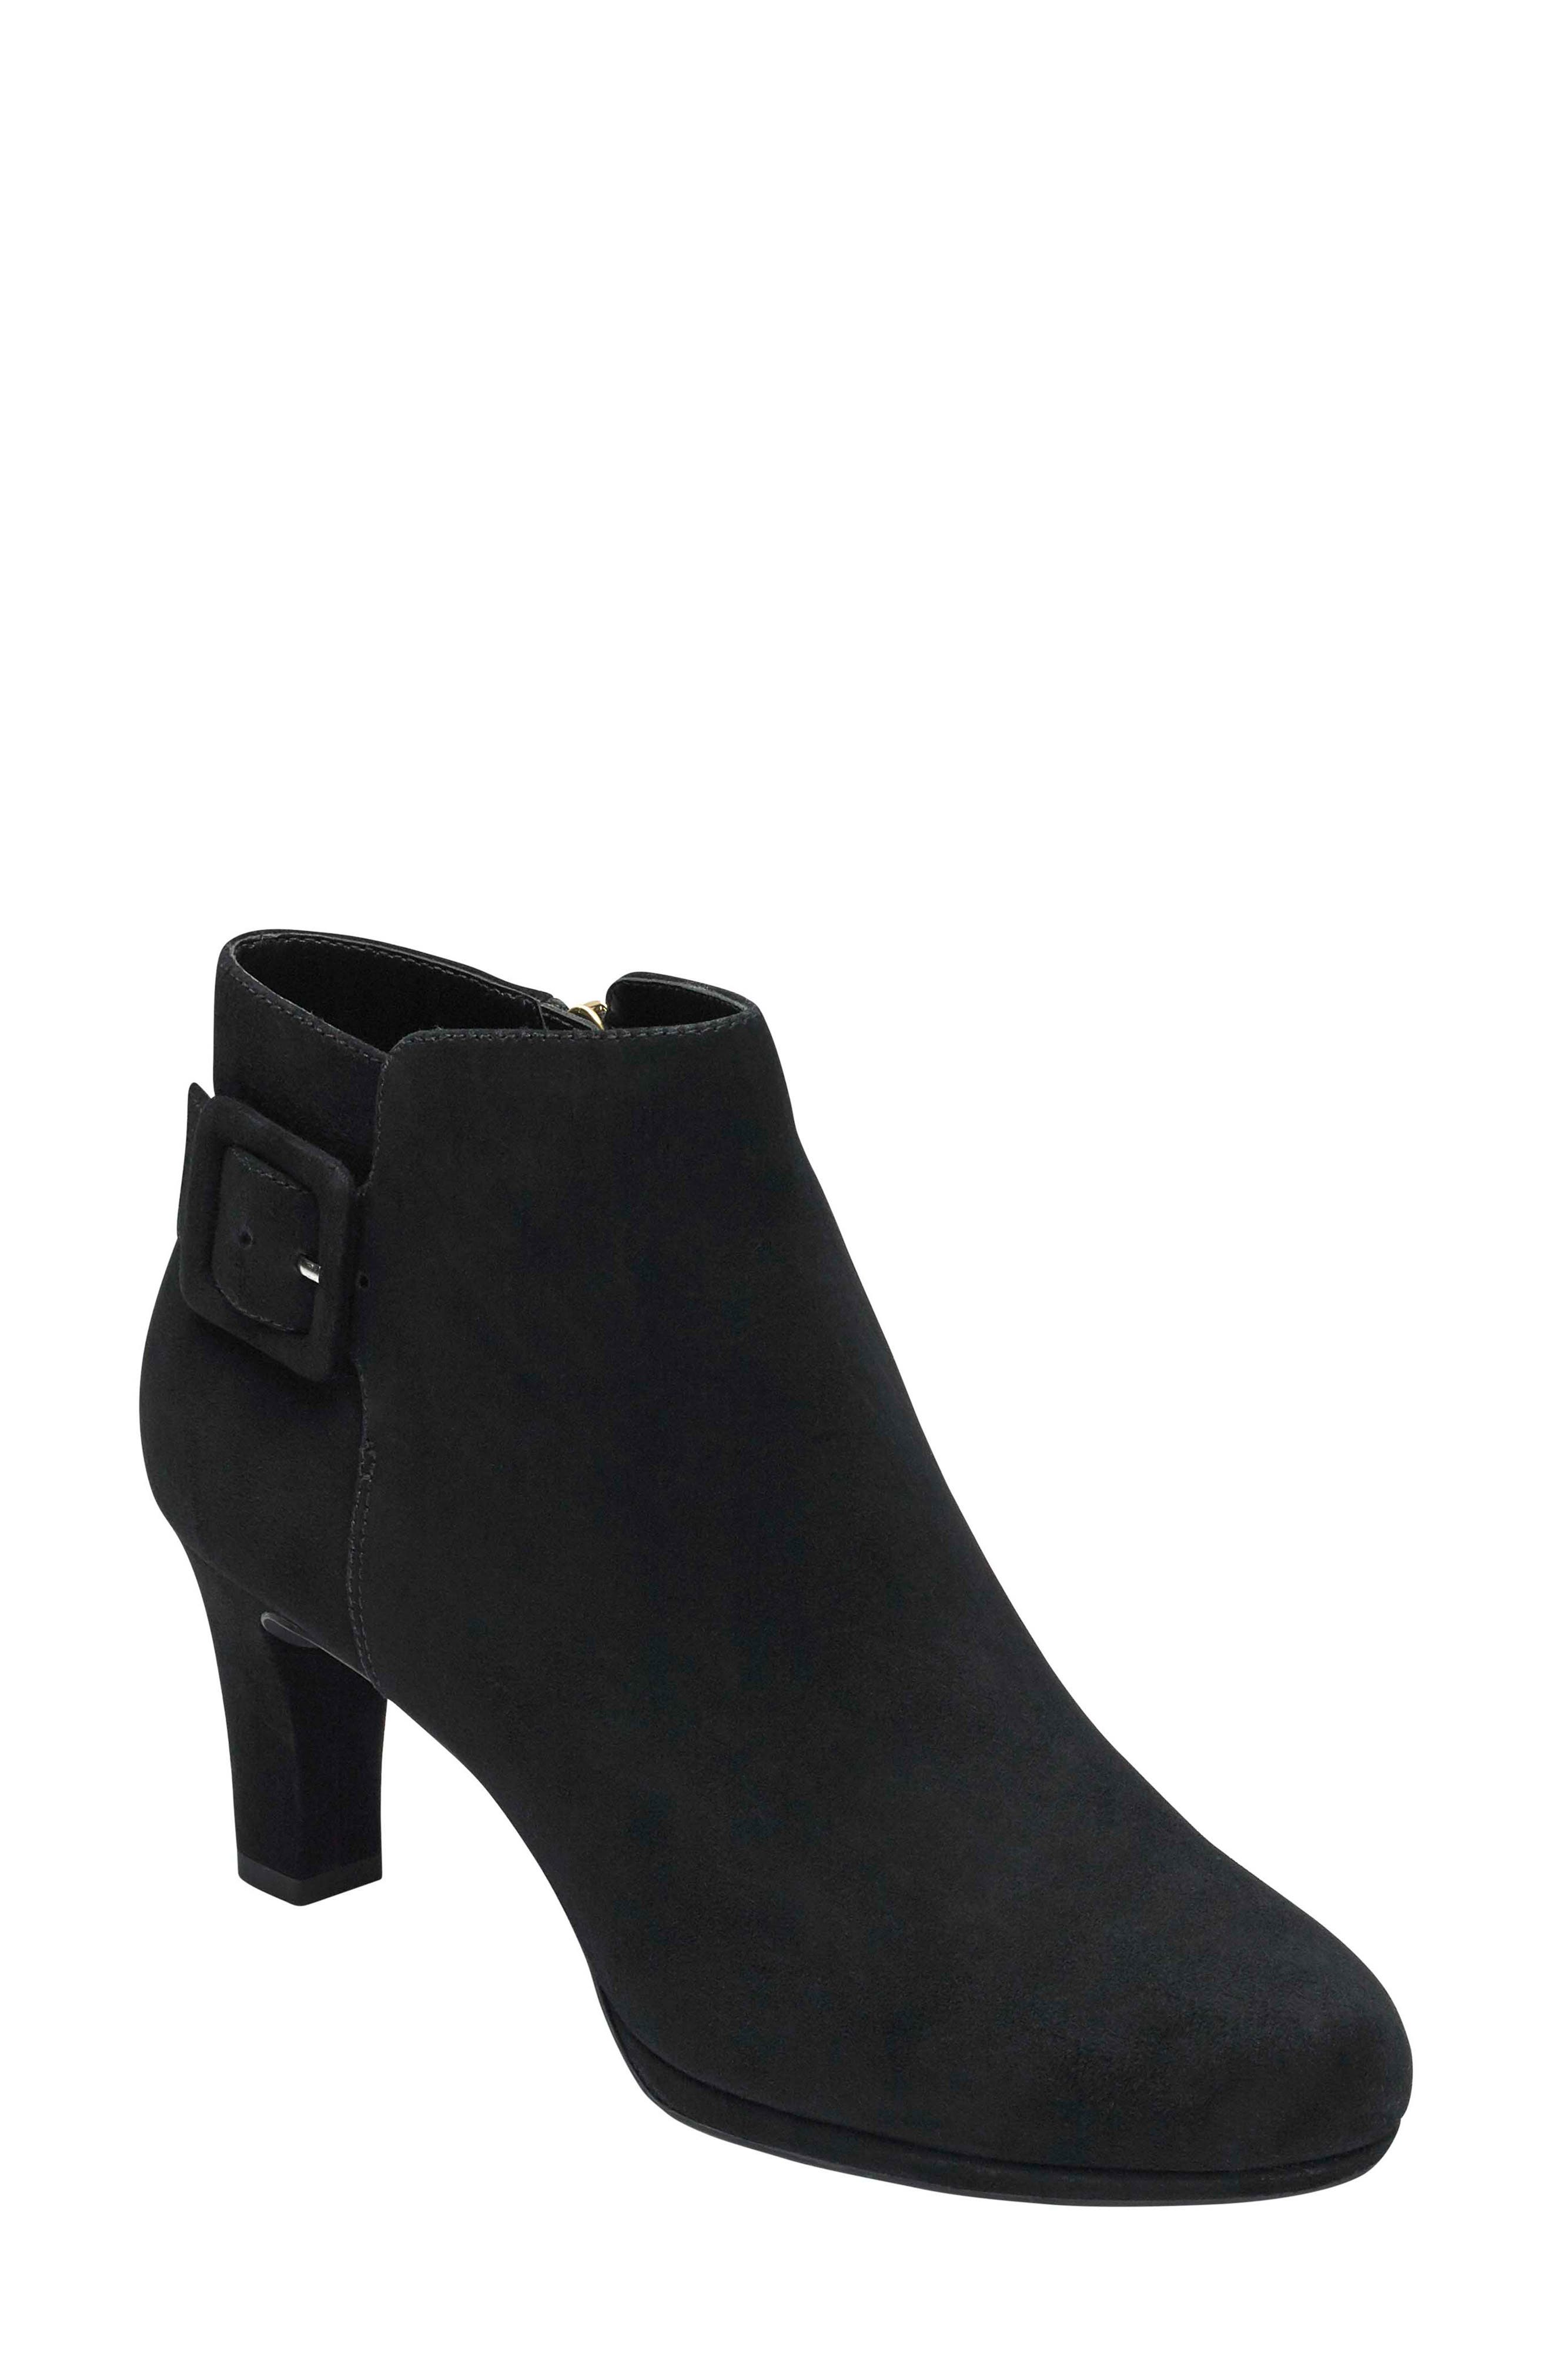 Rockport Total Motion Leah Bootie- Black